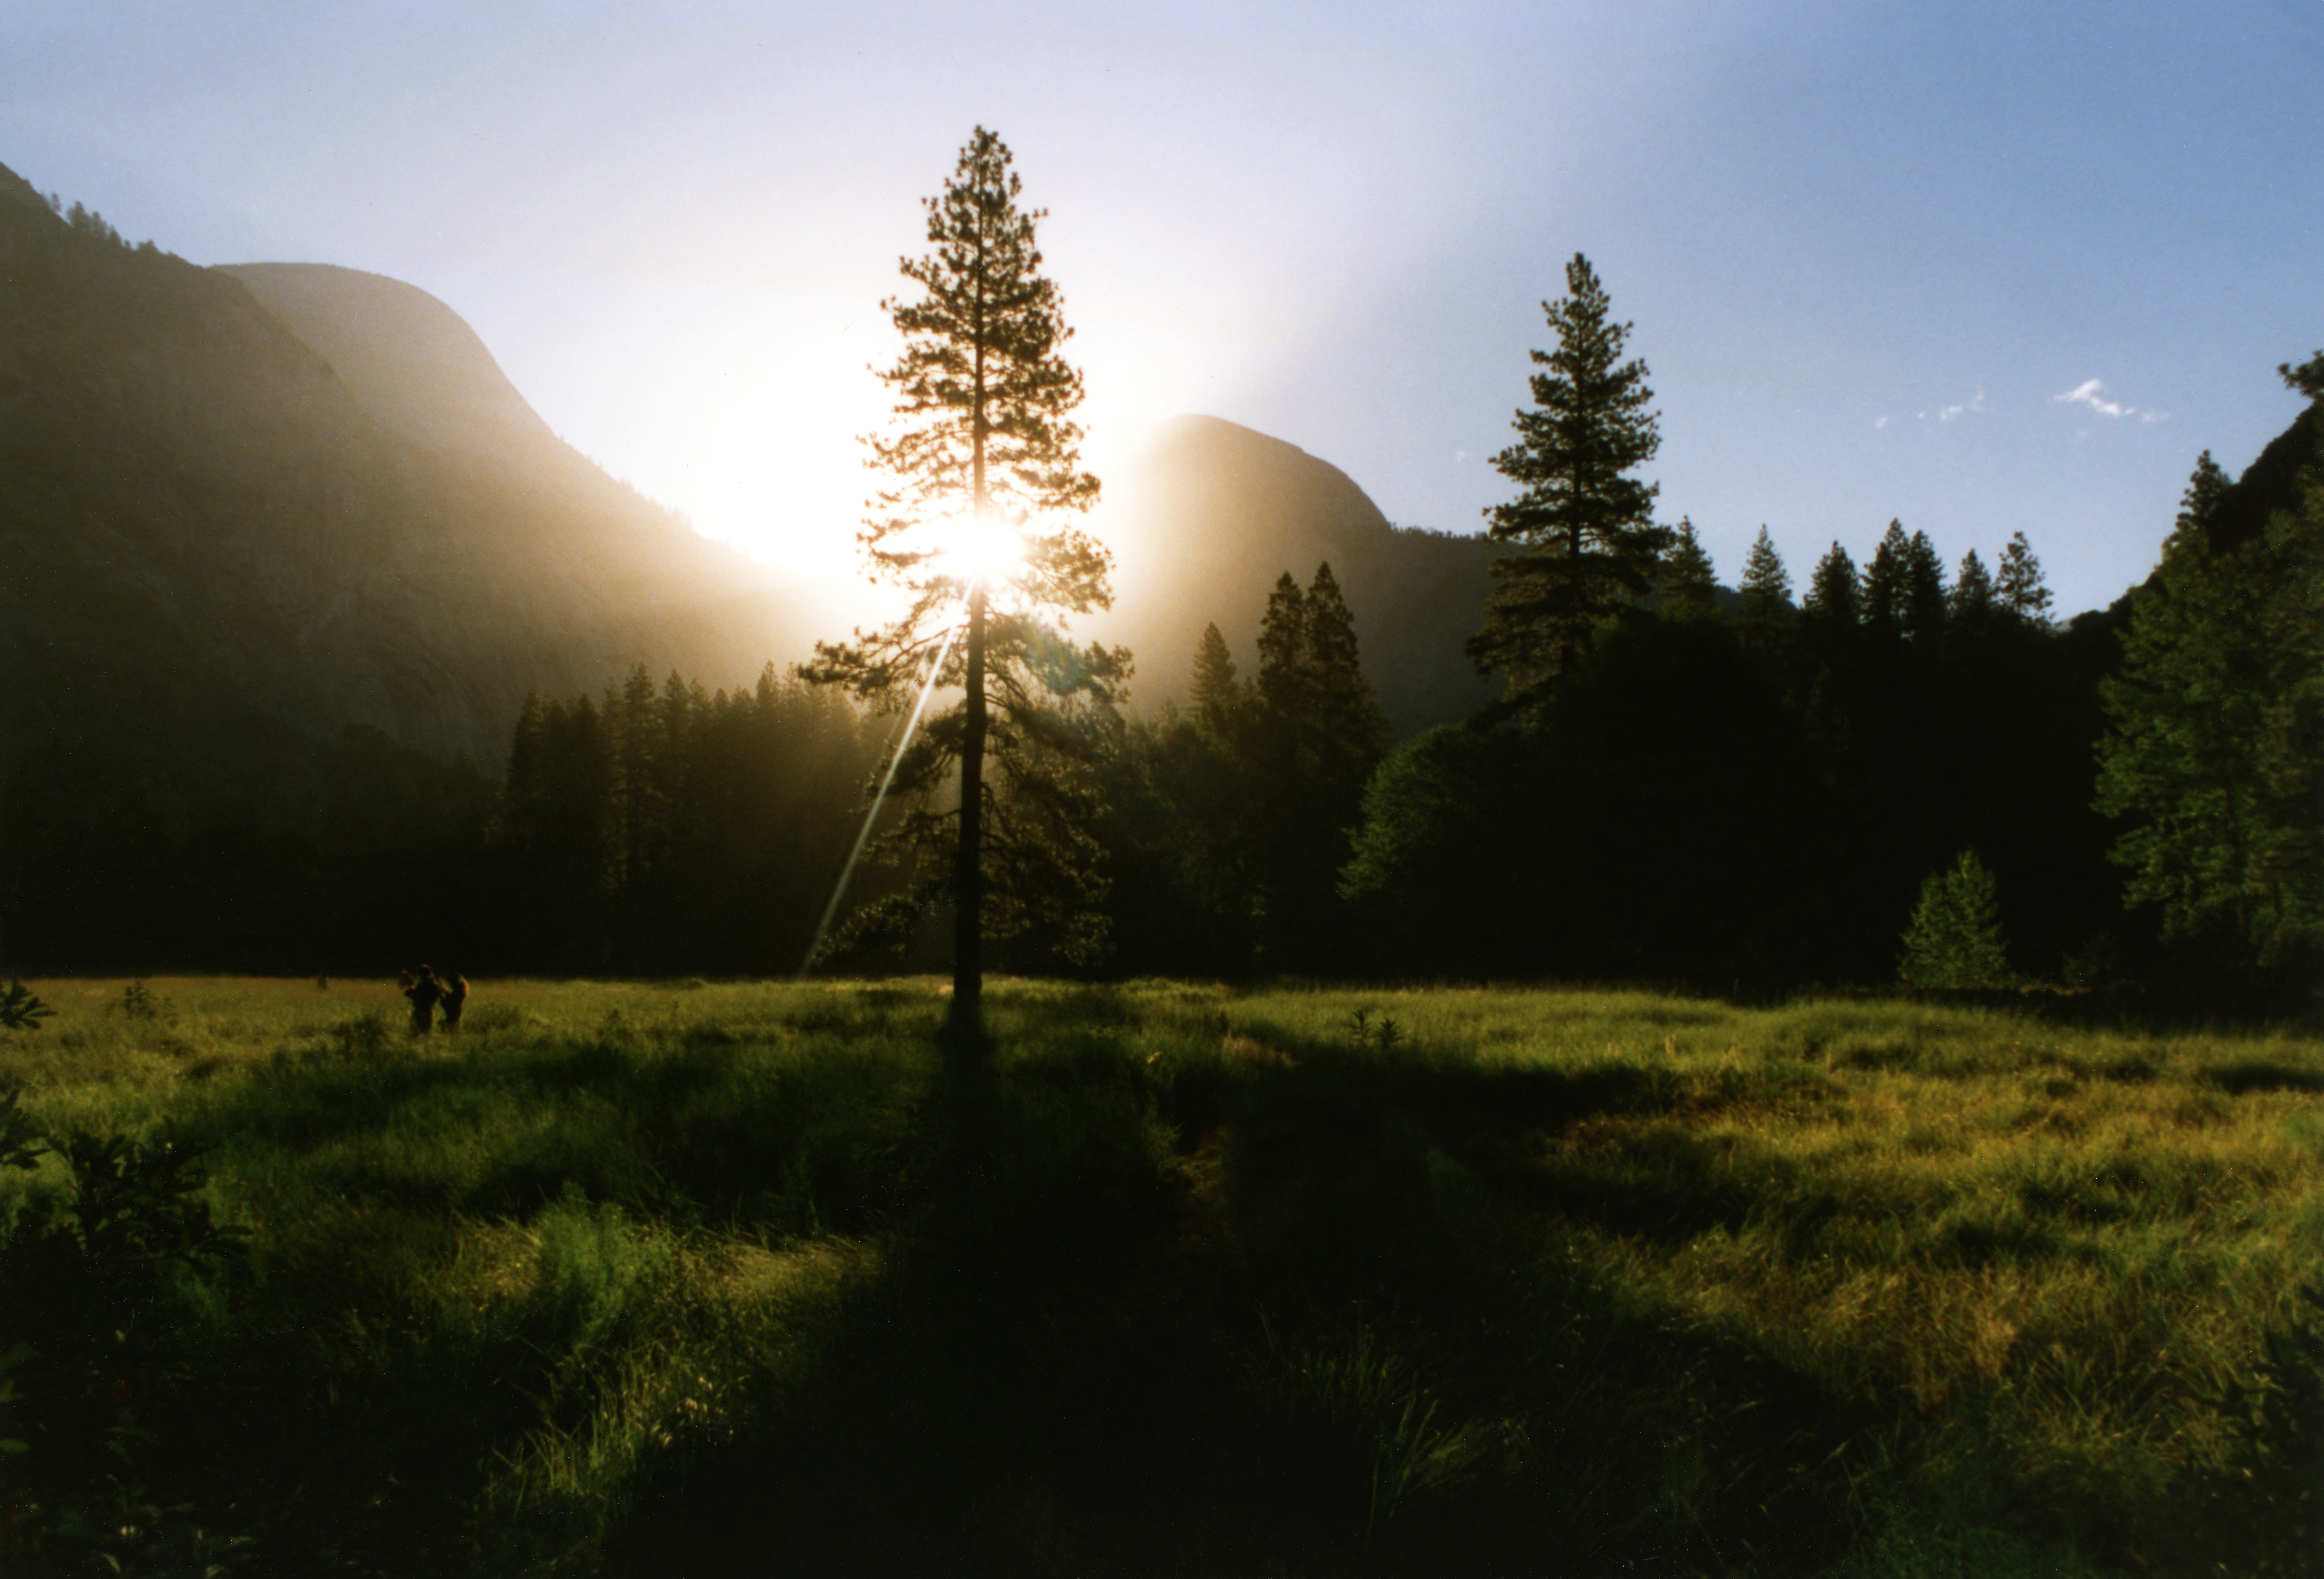 Two people in a green meadow with sparse trees during sunset